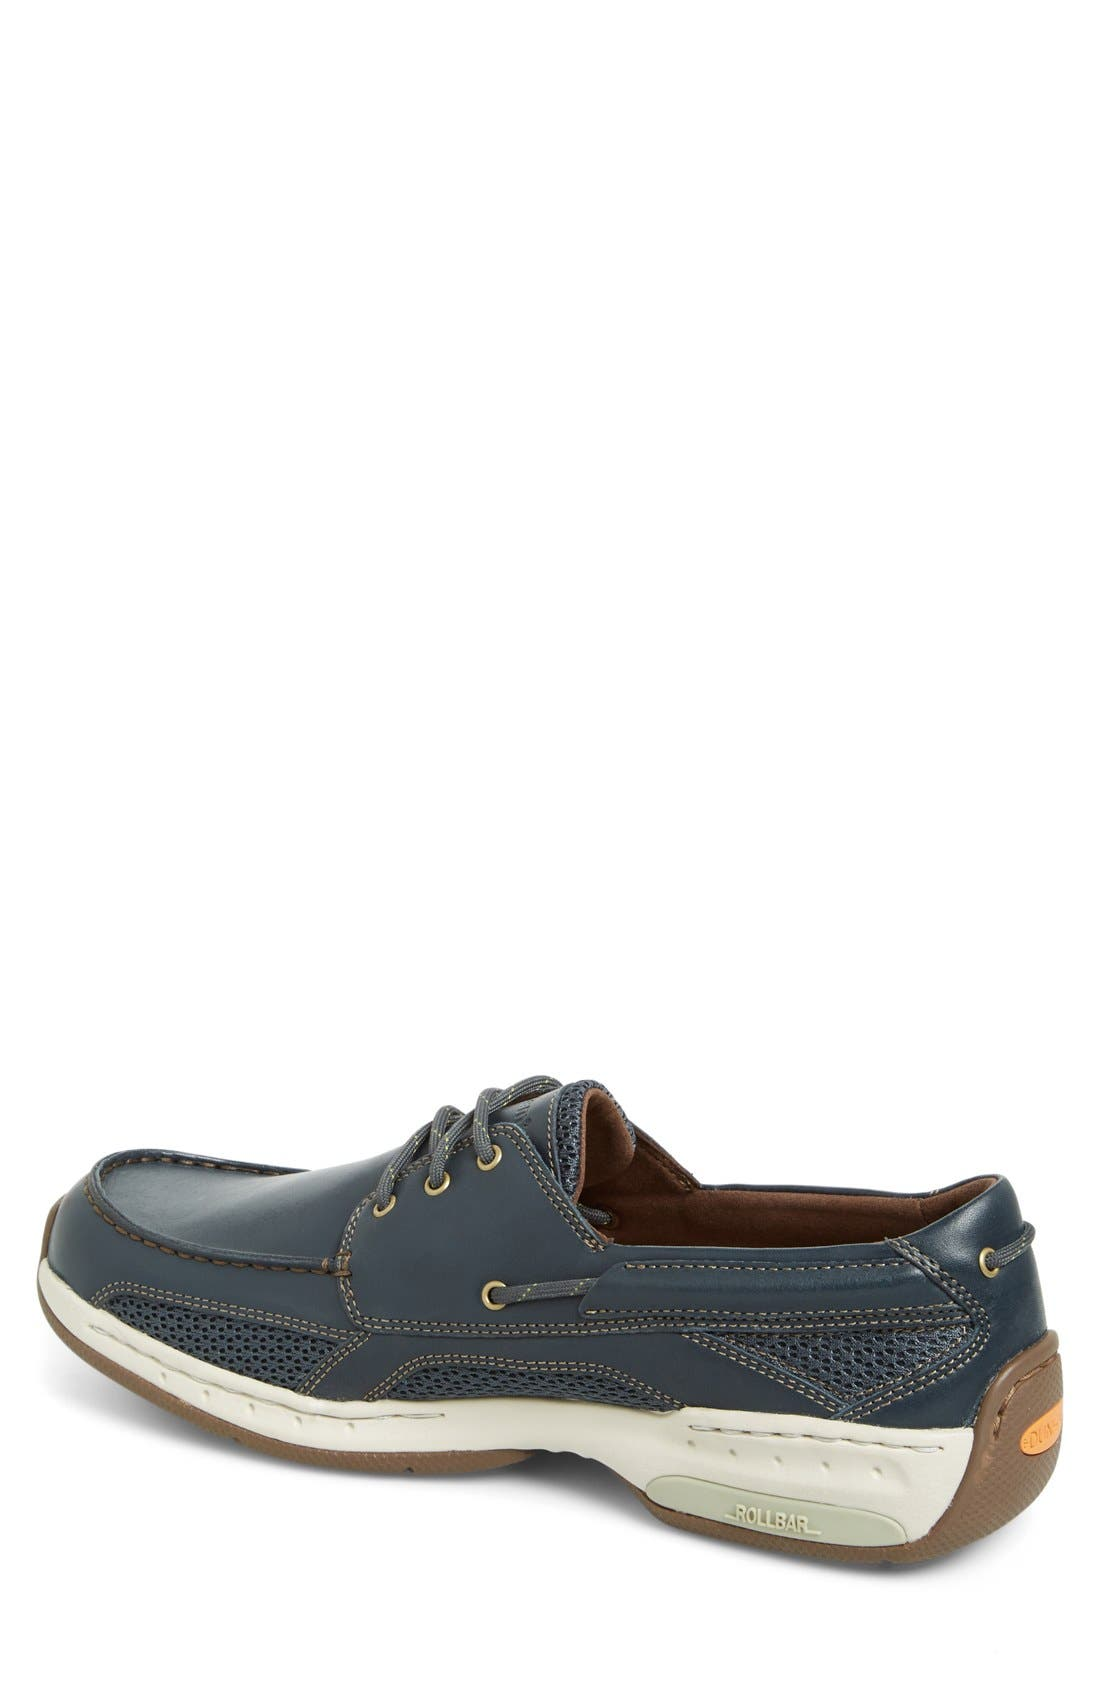 'Captain' Boat Shoe,                             Alternate thumbnail 4, color,                             NAVY